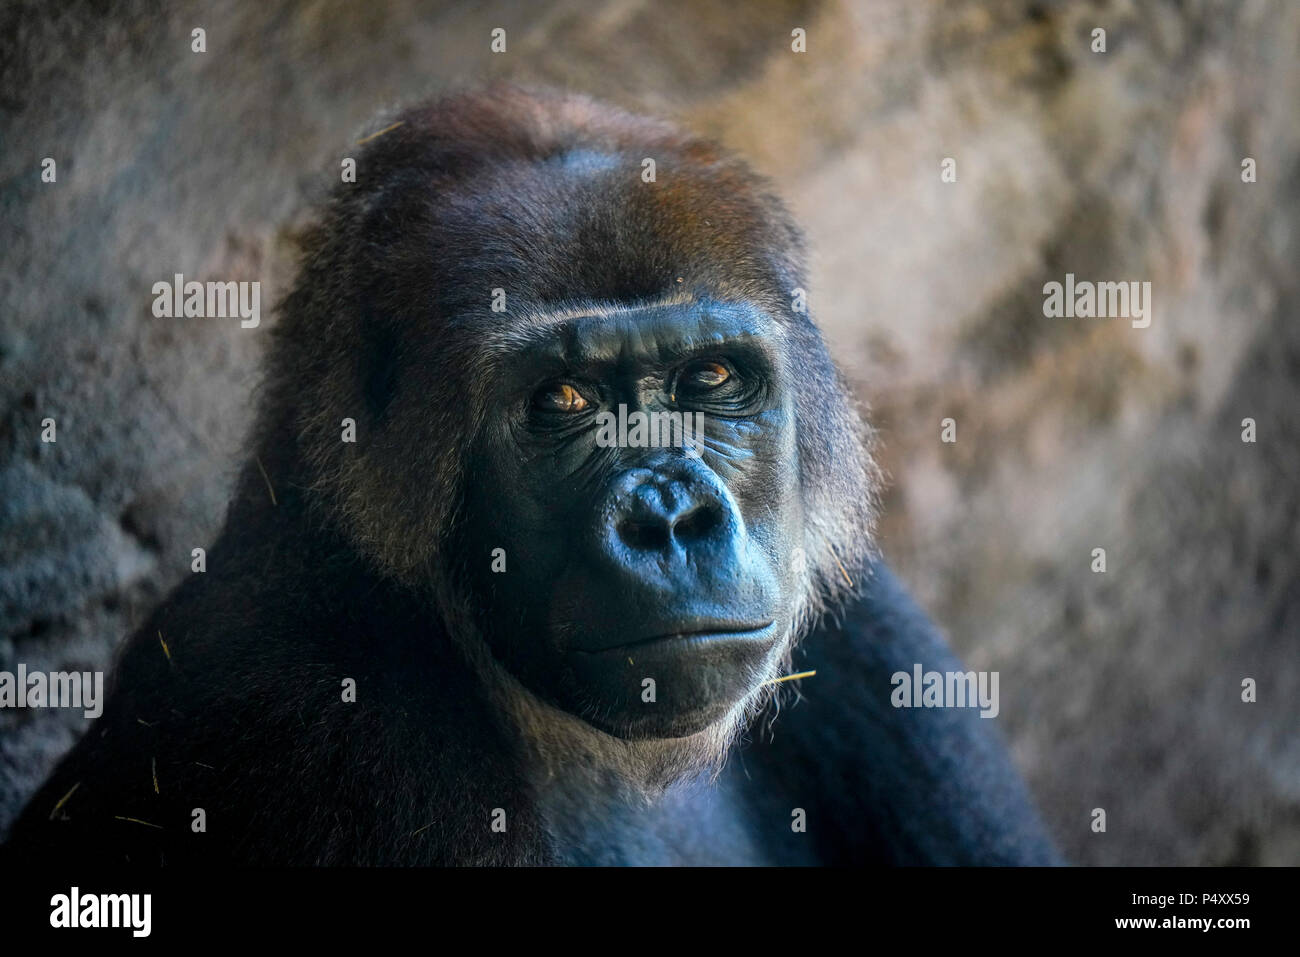 Gorilla - Kilimanjaro Safaris is a safari attraction at Disney's Animal Kingdom on the Walt Disney World Resort property in Lake Buena Vista, Florida. - Stock Image